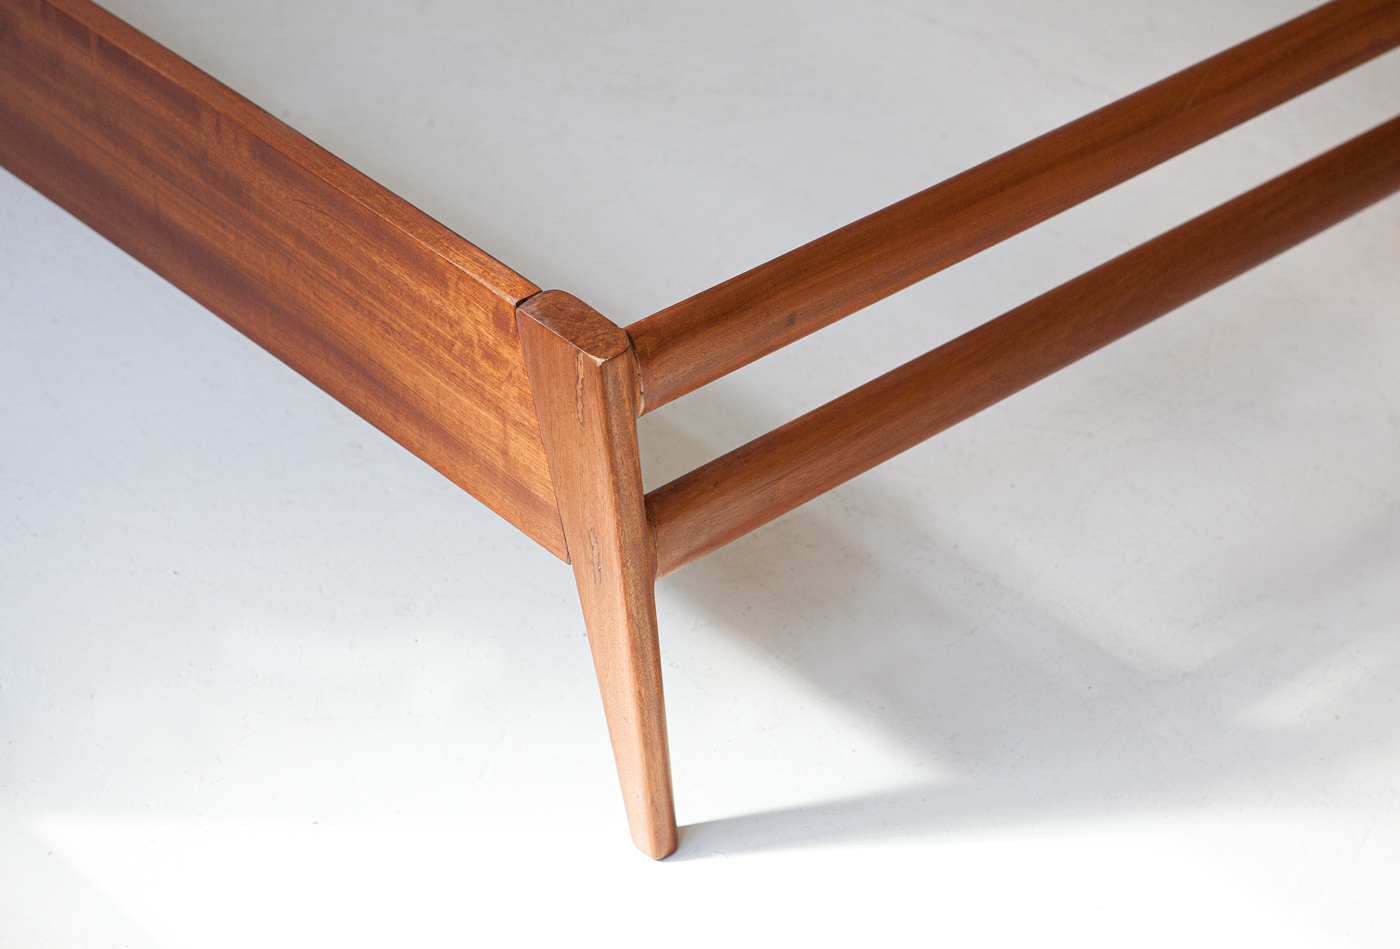 1950s-mahogany-double-bed-by-silvio-cavatorta-8-of101